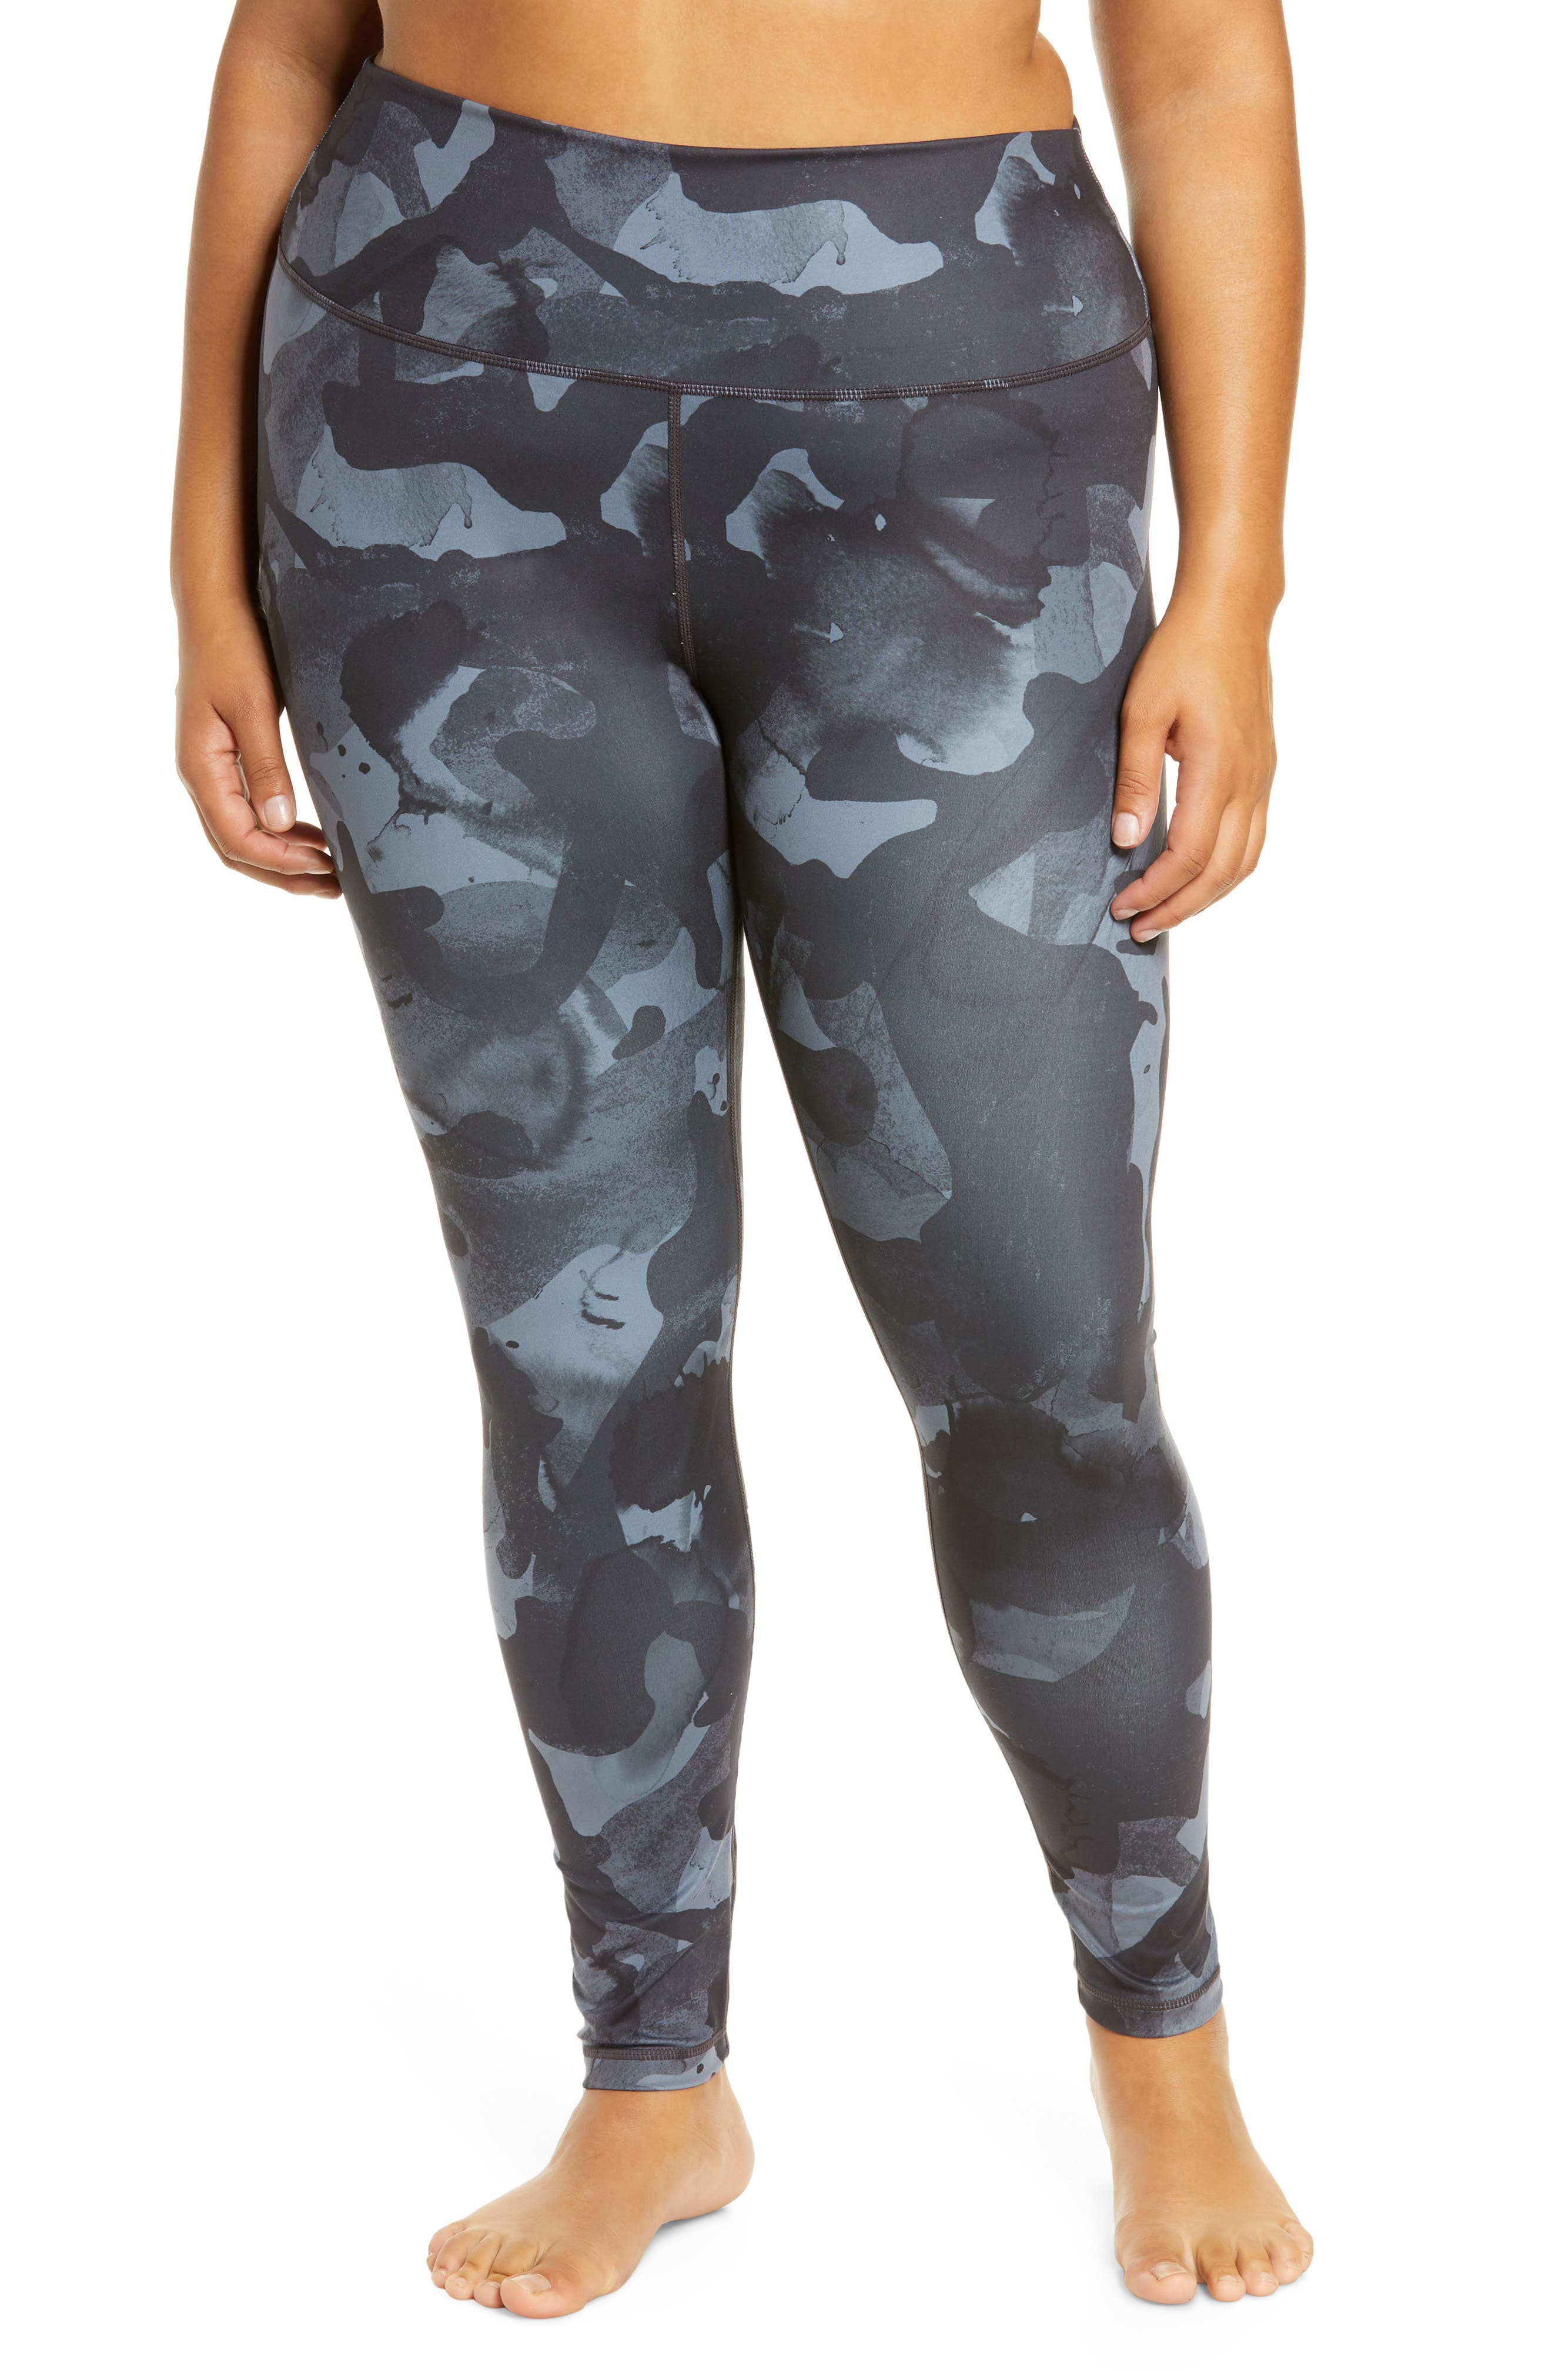 Hit your workout in graphic style in these incredibly lightweight, high-waisted leggings that will keep you comfortable while you work up a sweat. Style Name: Zella High Waist Studio Lite Ankle Leggings (Plus Size). Style Number: 6079741. Available in stores.